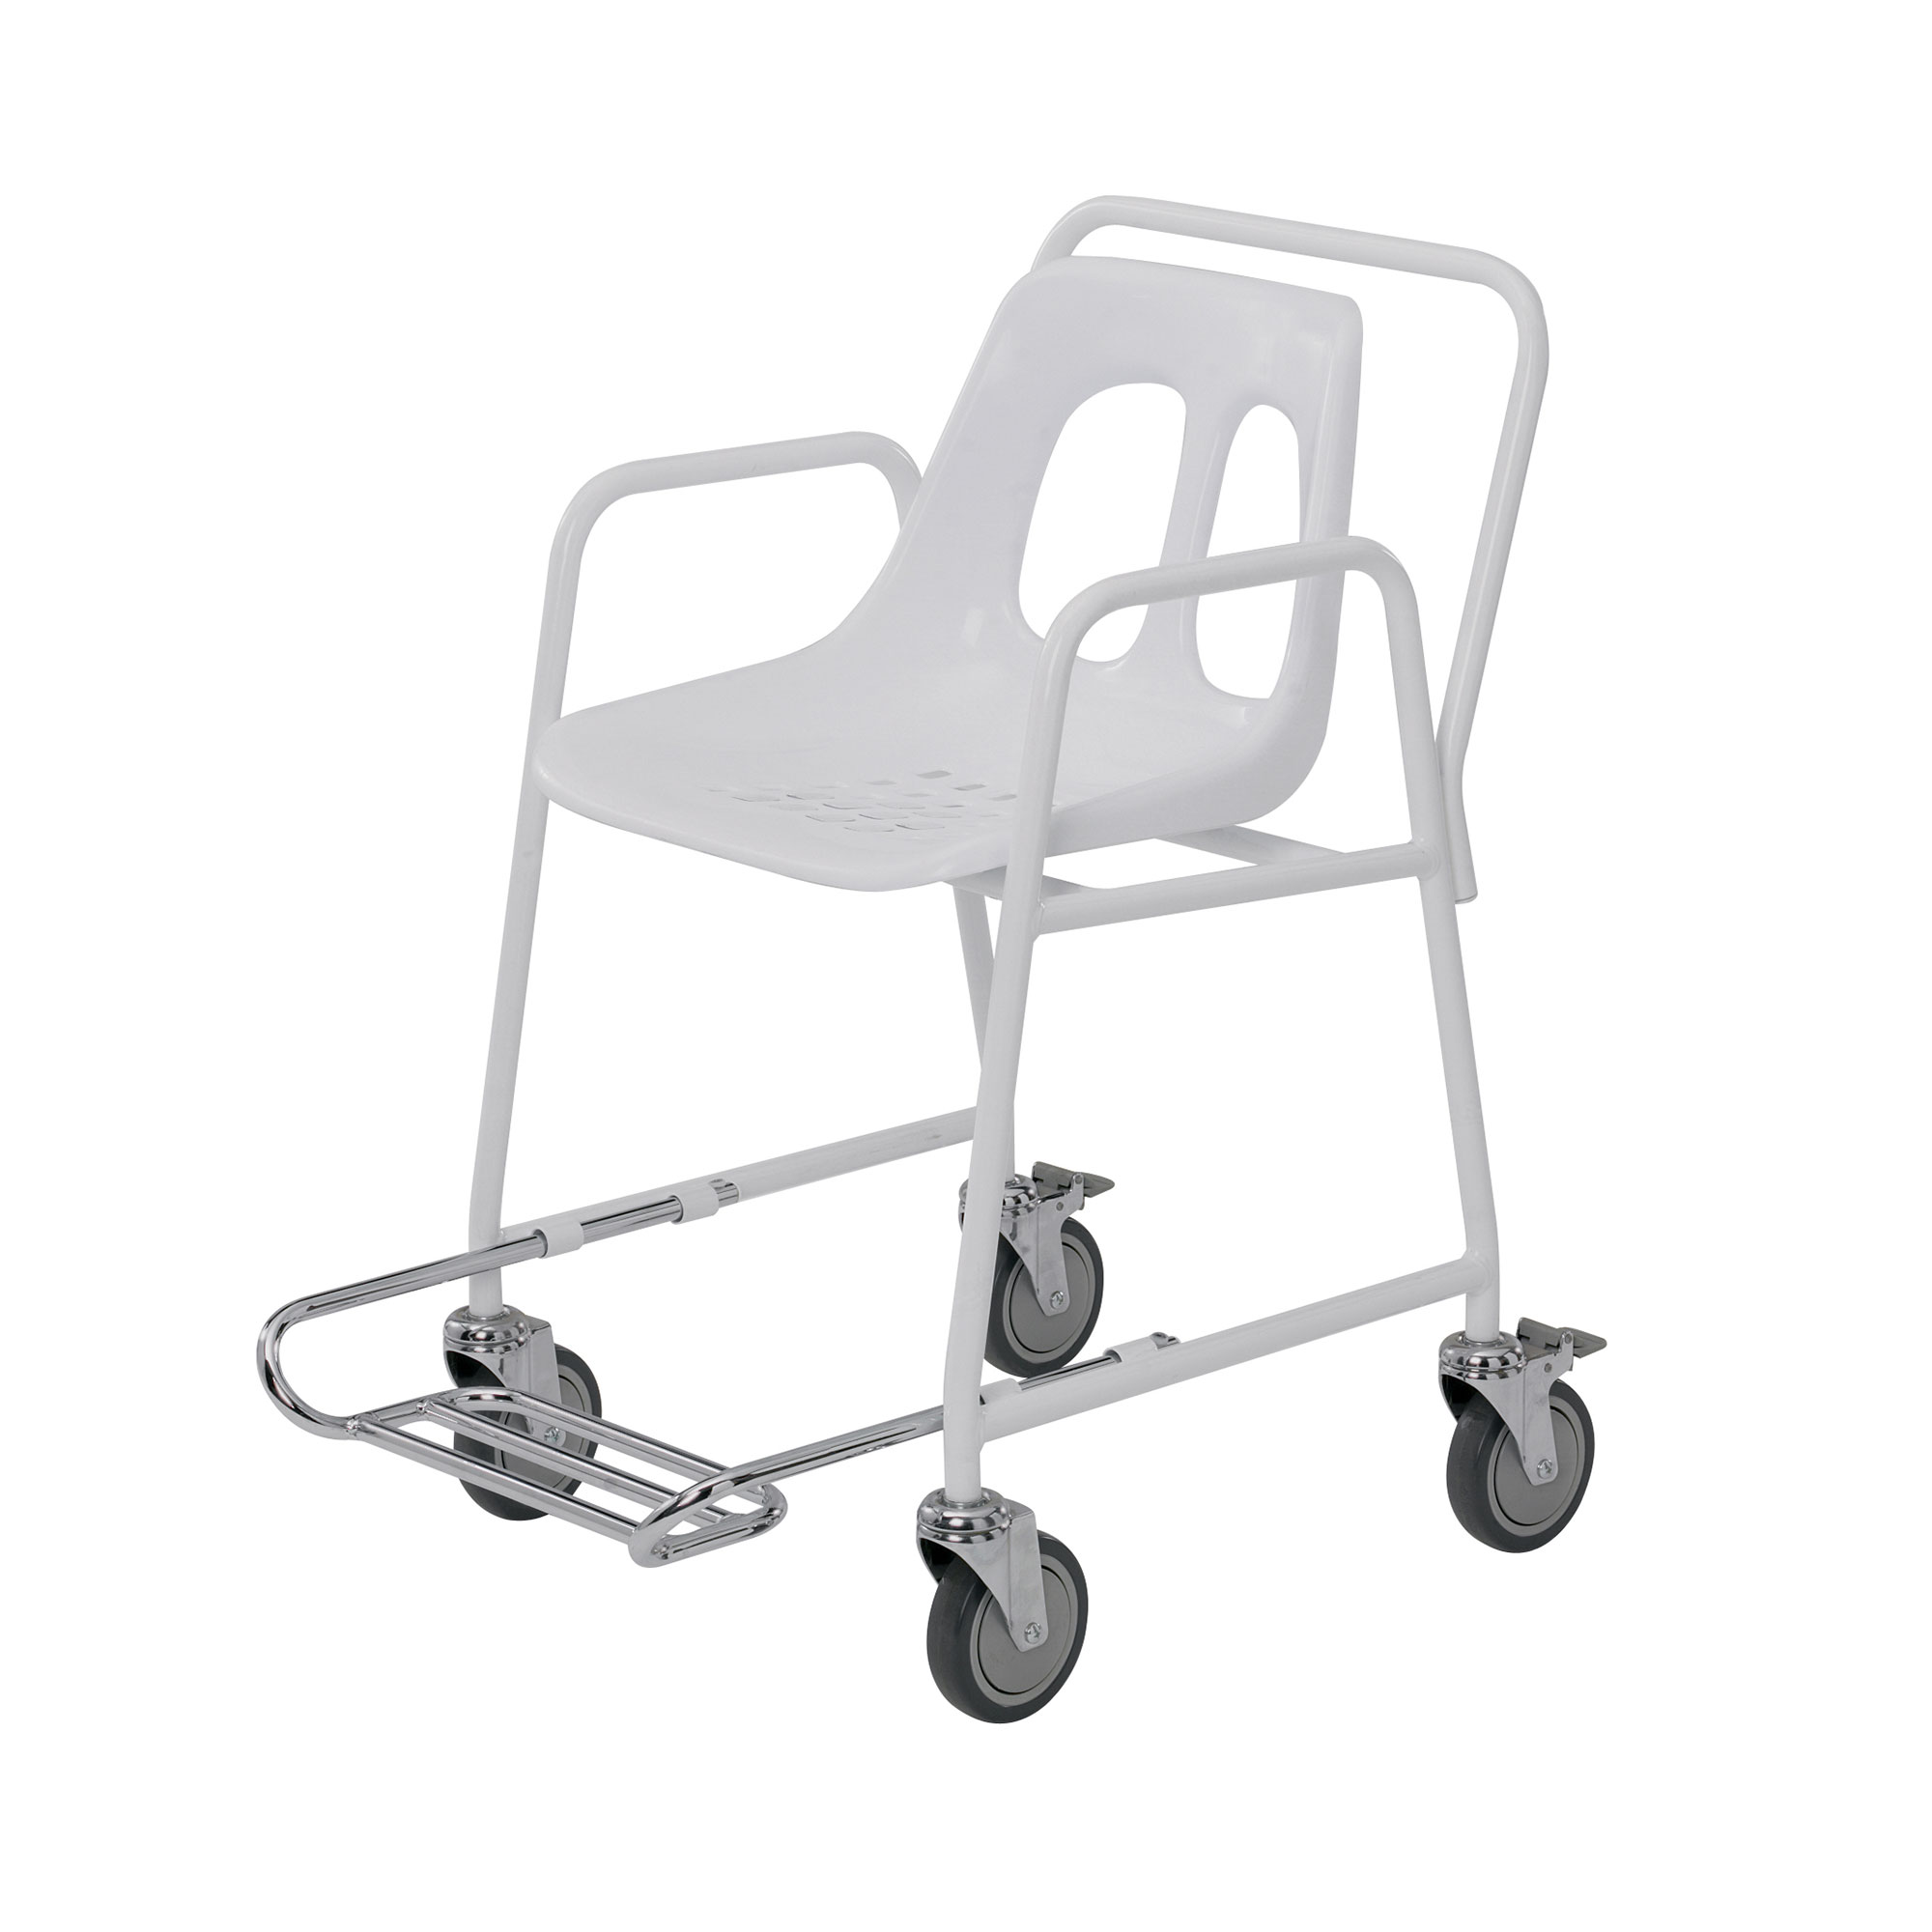 4550 FR Mobile Shower Chair with Footrest Roma Medical